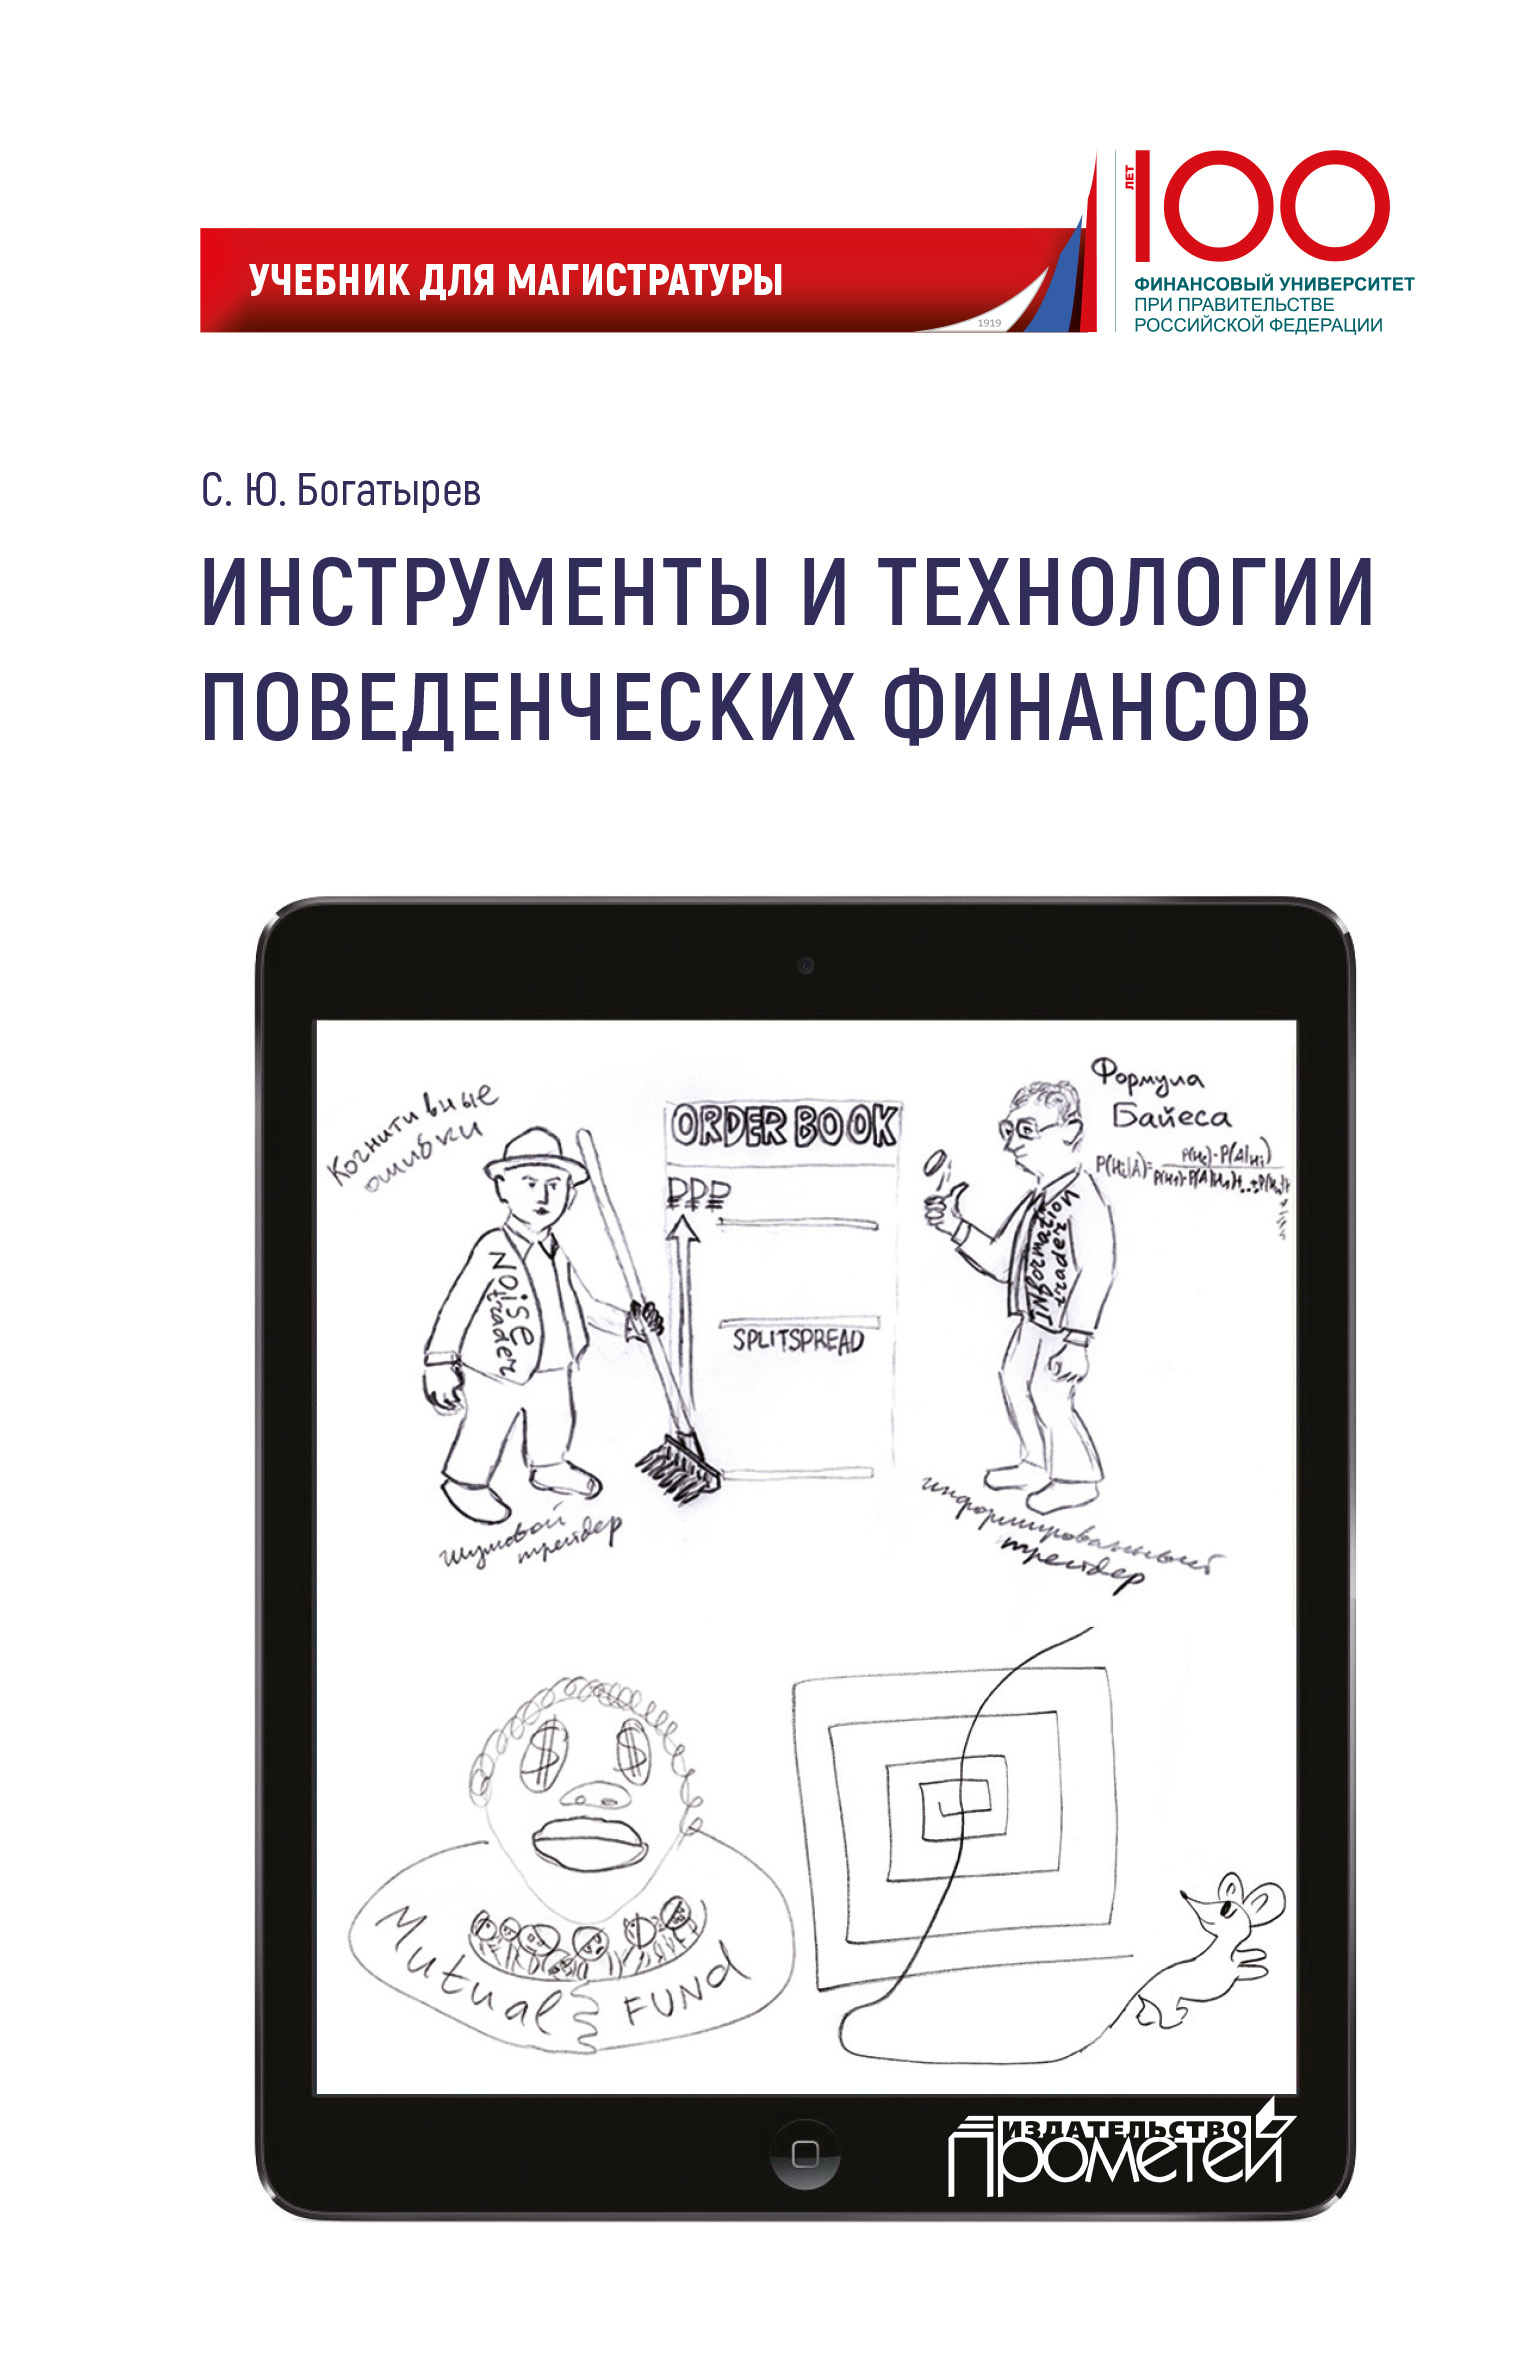 С. Ю. Богатырев Инструменты и технологии поведенческих финансов field walter stones of the temple or lessons from the fabric and furniture of the church